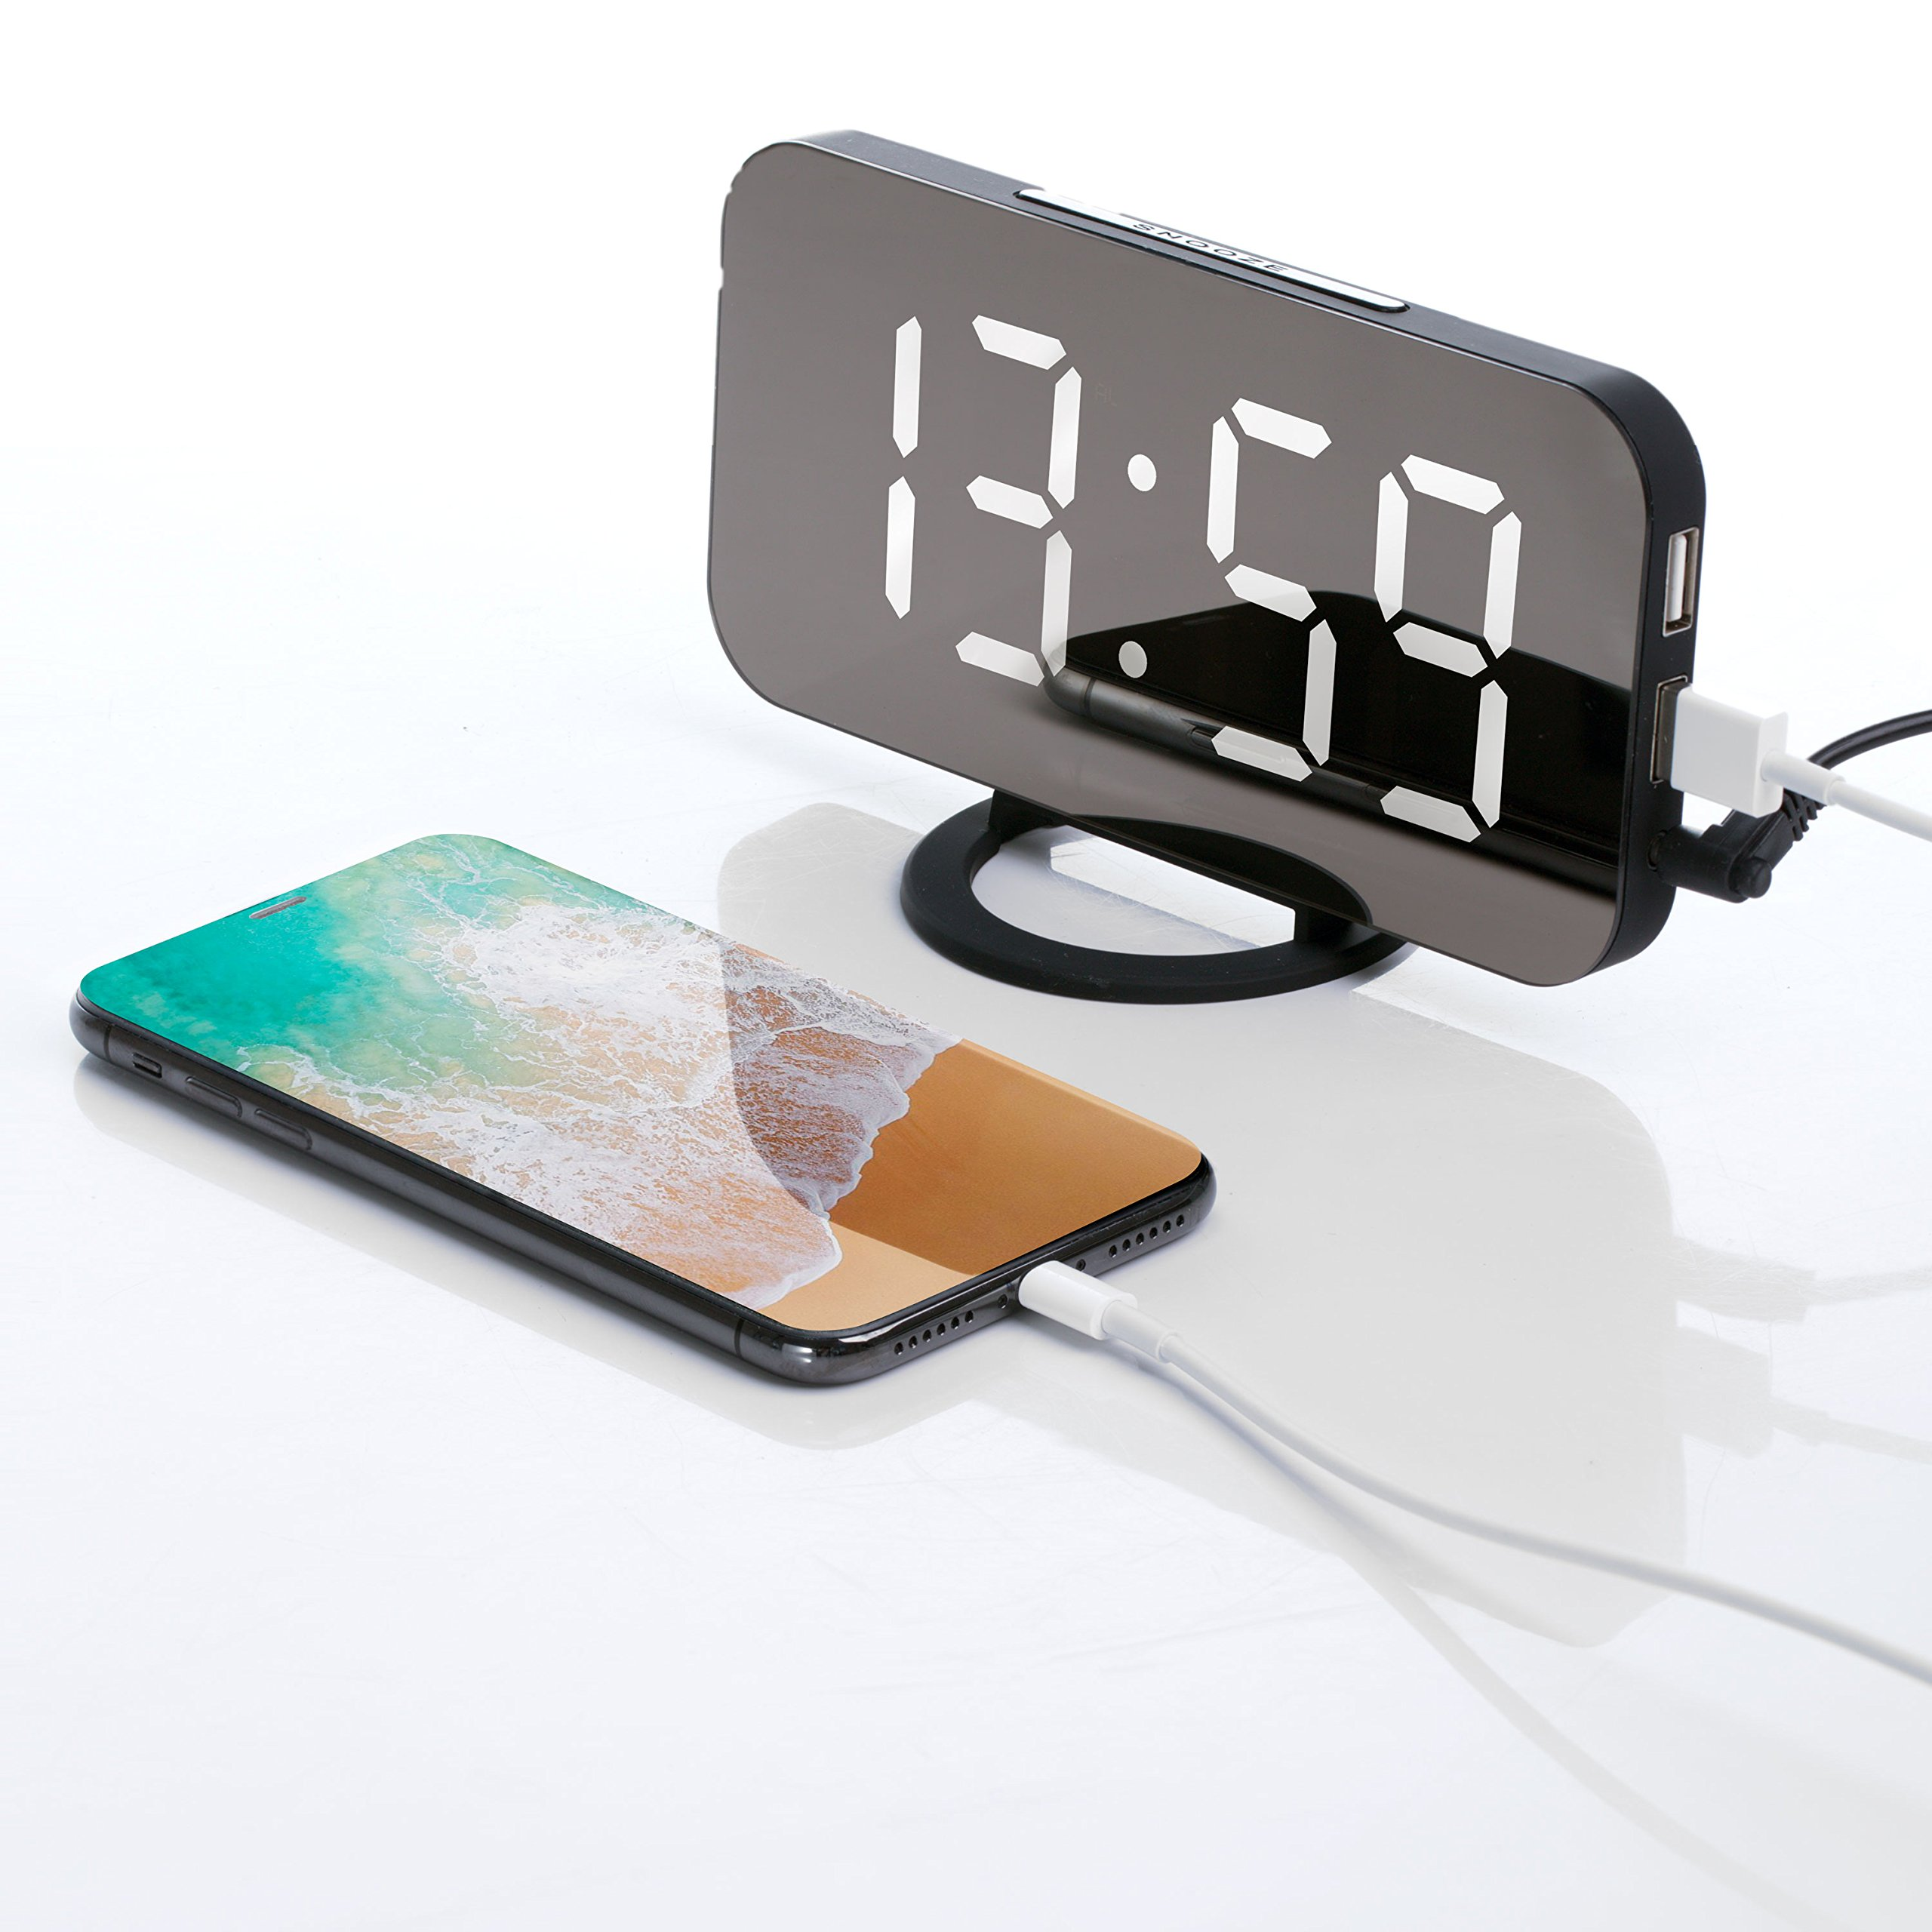 Digital alarm clock - stylish led clock with the USB port, a huge display, adjustment of display's brightness, the function of saving the configuration